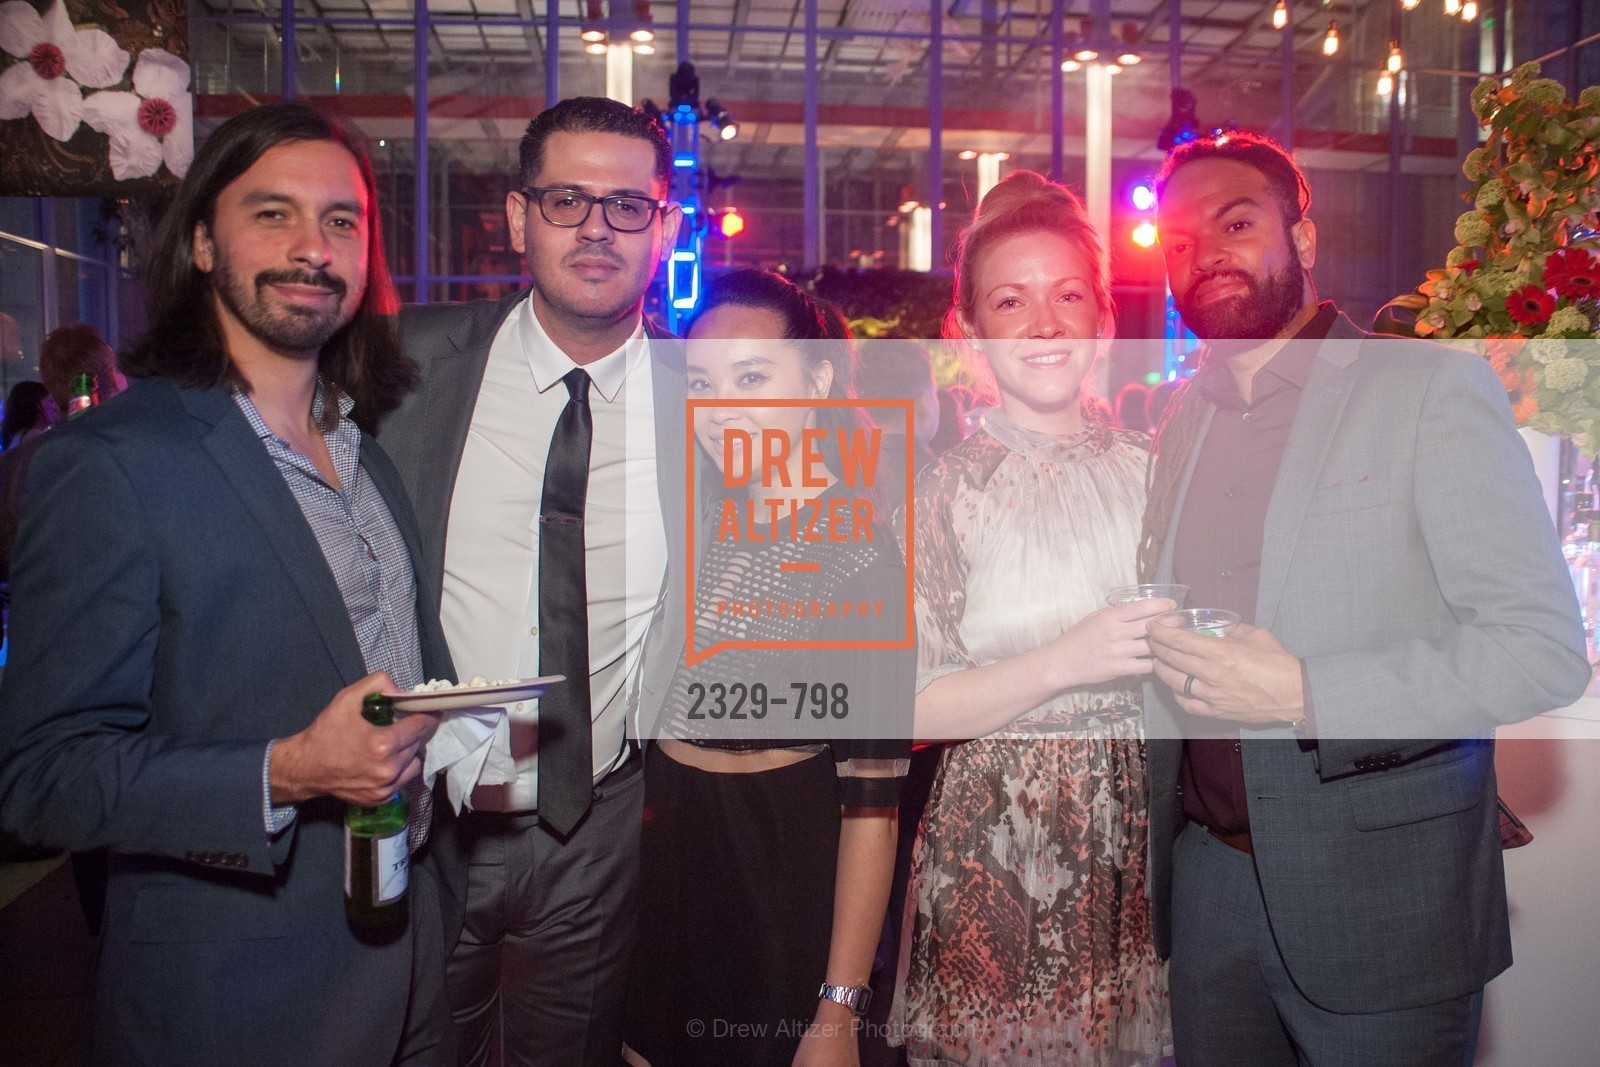 Josh Cono, Bobby Stahl, Rosa Gil, Carrie Perry, Mark Perry, CALIFORNIA ACADEMY OF SCIENCES - Big Bang Gala 2015, US, April 23rd, 2015,Drew Altizer, Drew Altizer Photography, full-service agency, private events, San Francisco photographer, photographer california